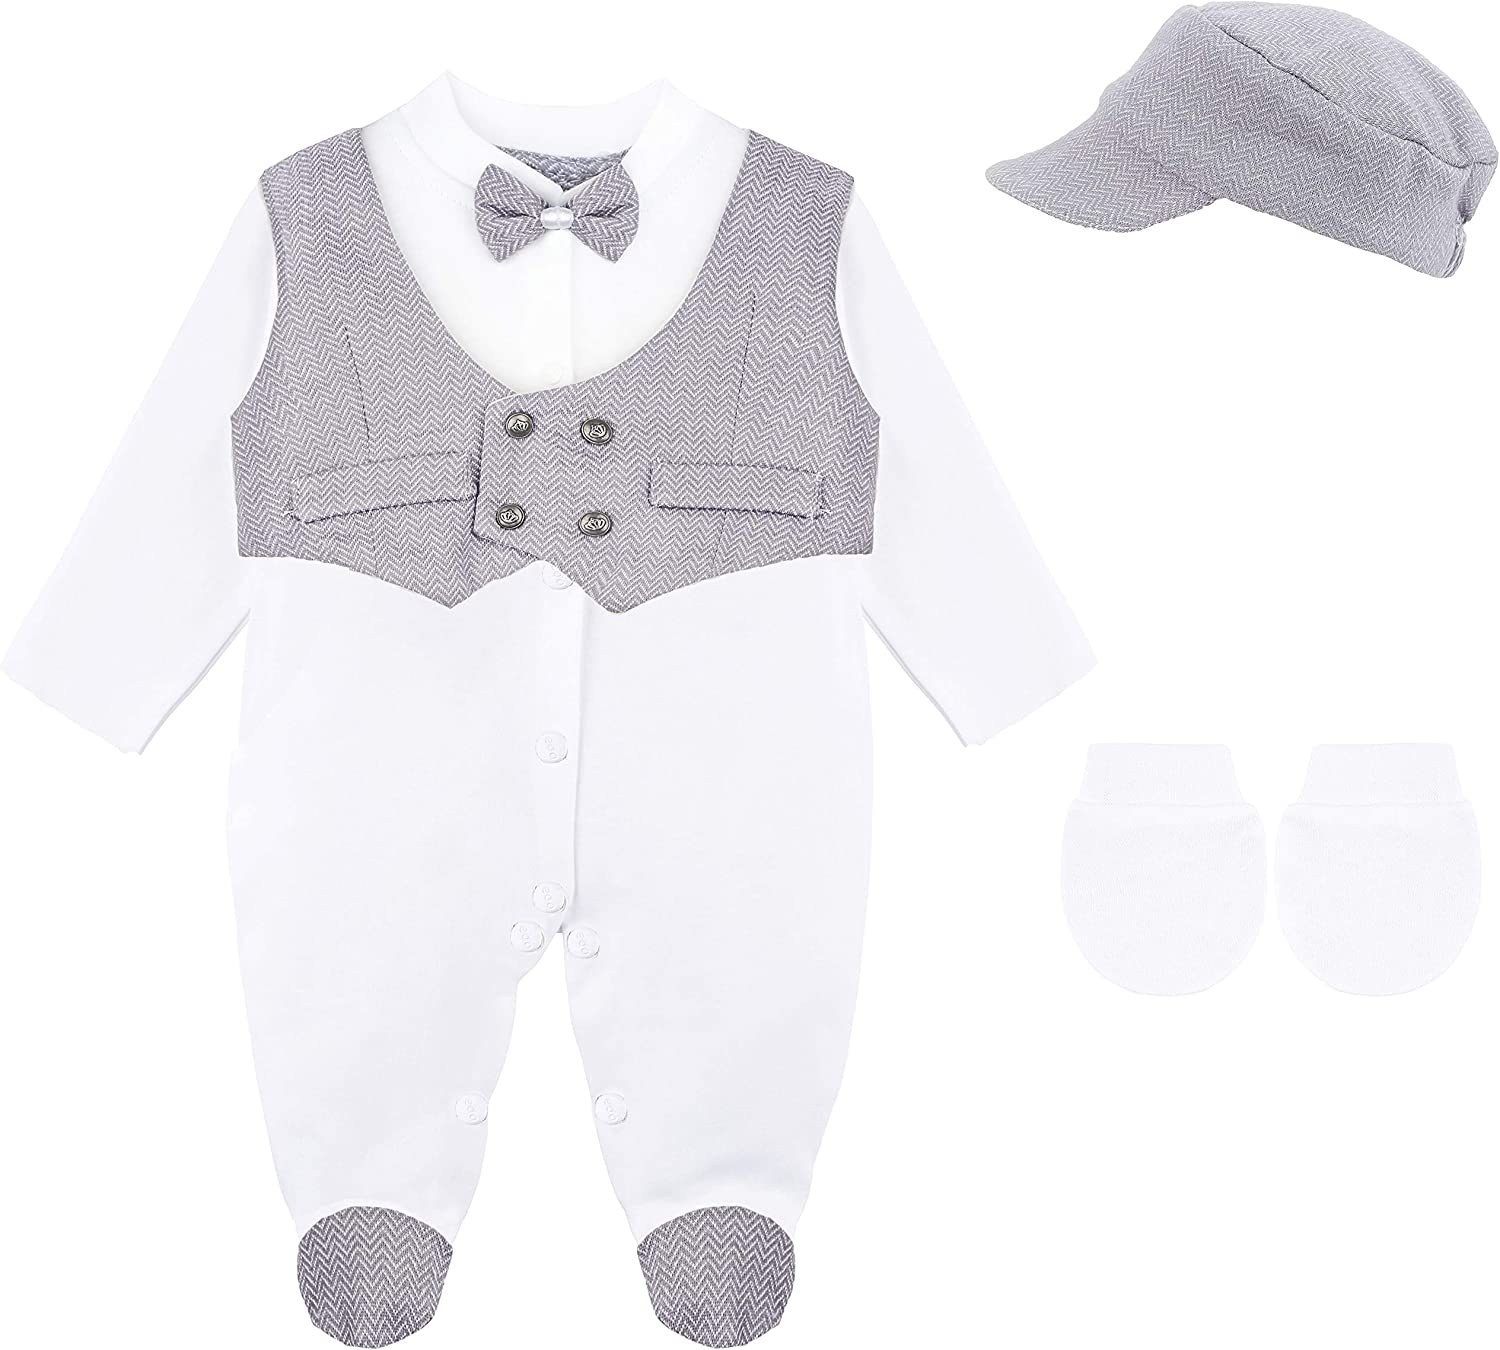 Lilax Baby Boys Tuxedo Outfit Long Sleeve Footie with Vest and Pant 3 Piece Set